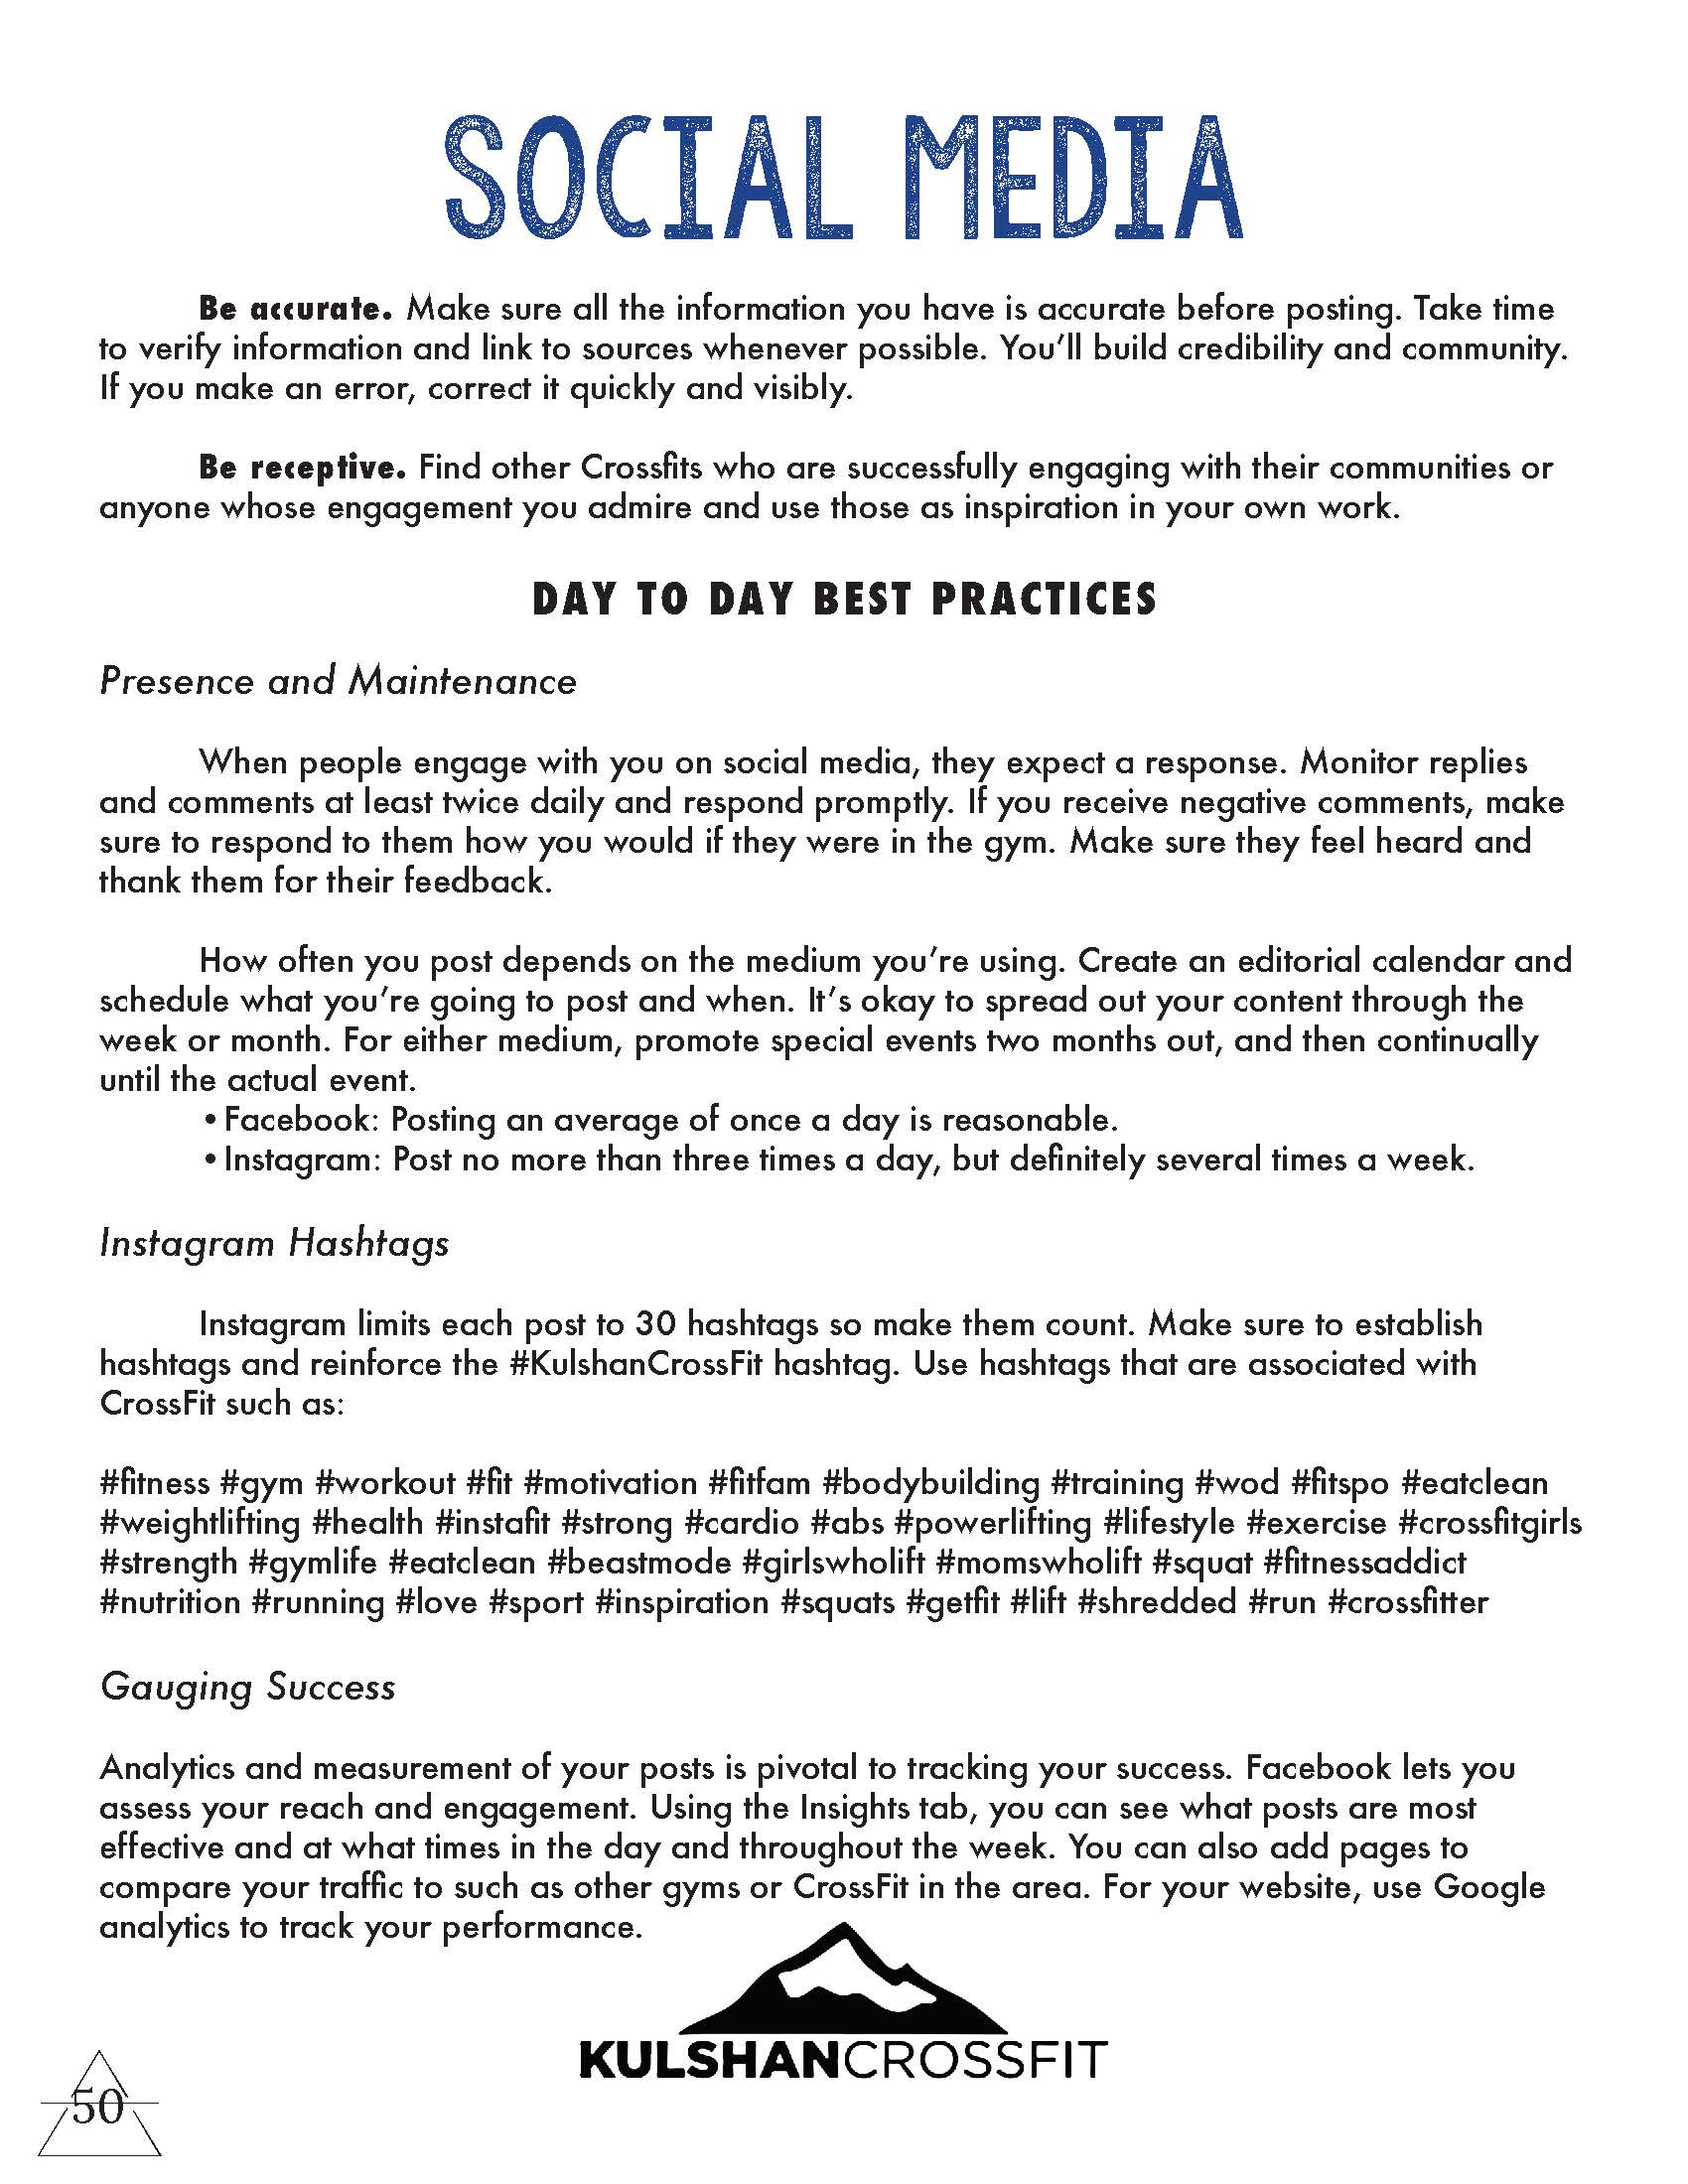 CAMPAIGNS BOOKLET FINAL_Page_50.jpg